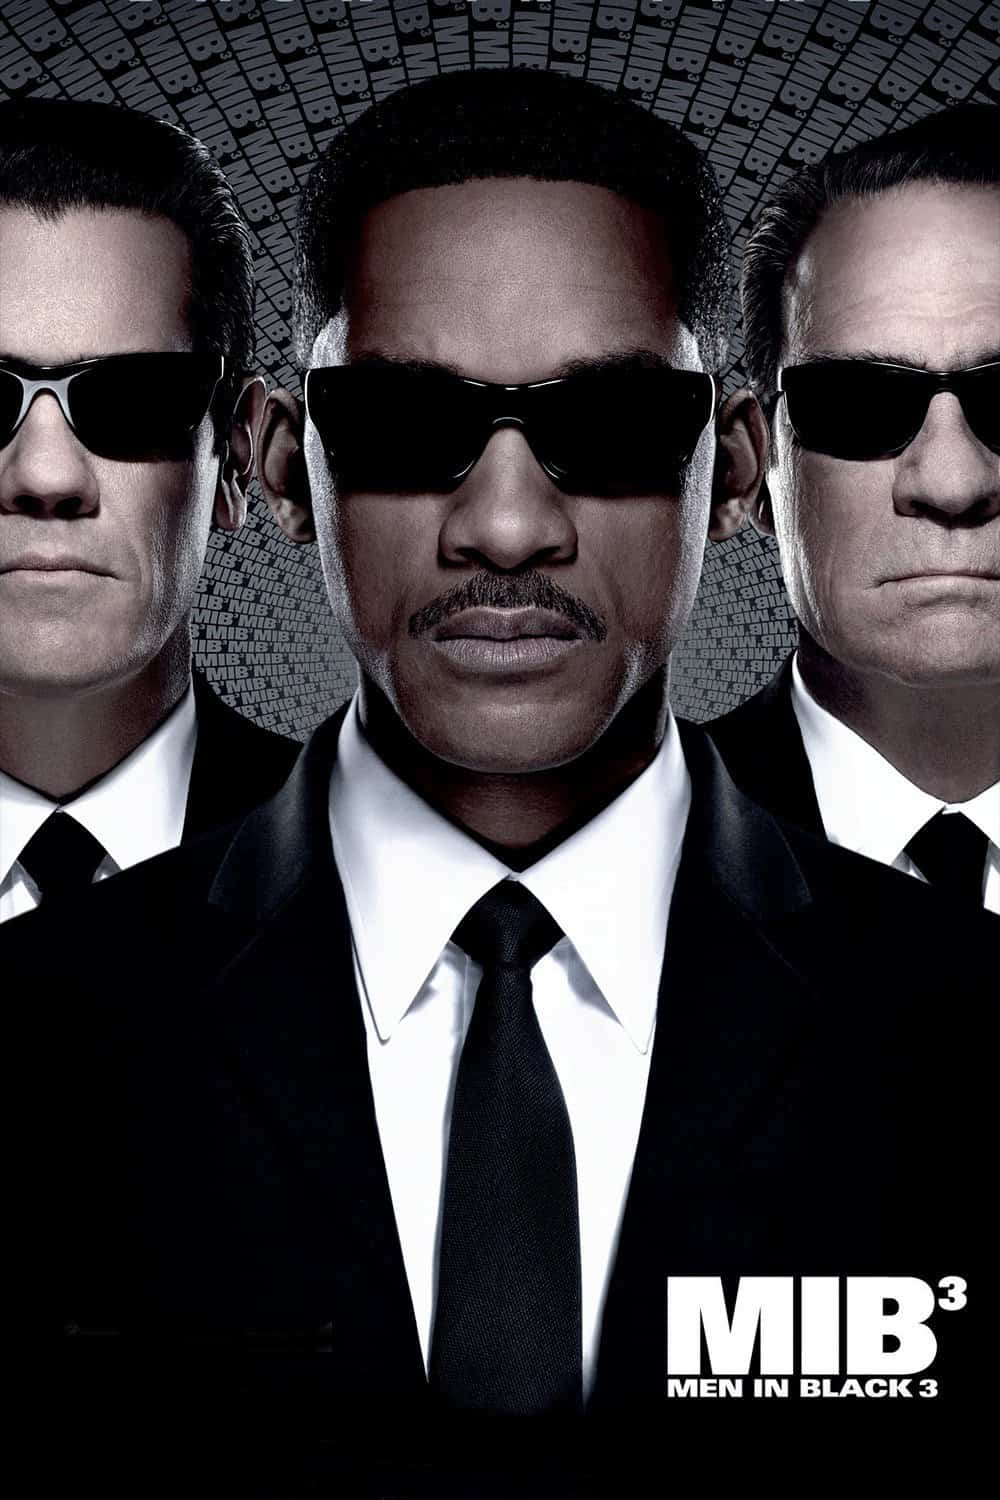 Men in Black 3, 2012